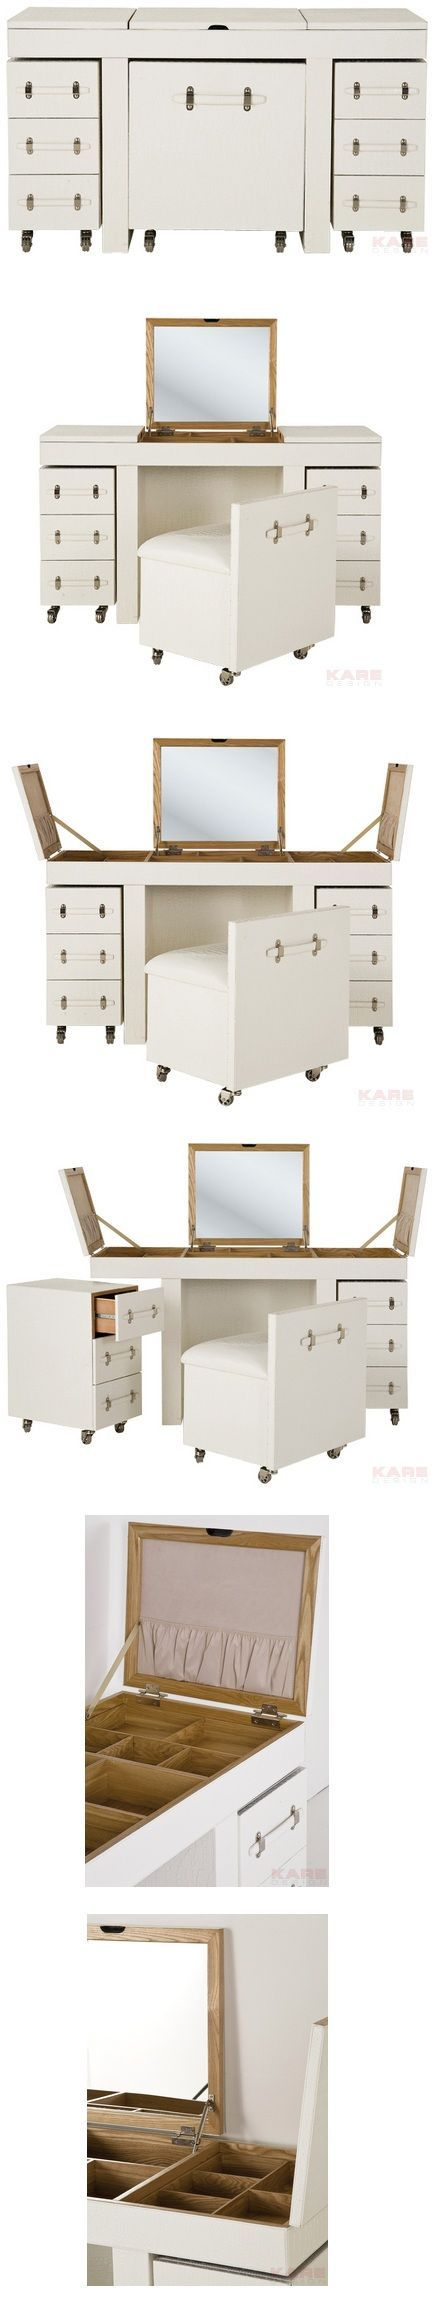 WHAT IS THAT?: A compact vanity/dresser | The White Diva dressing table combination provides everything that a real diva needs and offers plenty of room for cosmetics, hair-styling accessories and jewelry. Consists of a dressing table, stool and two chests of drawers. | Brilliant! Perfect for a small bedroom.